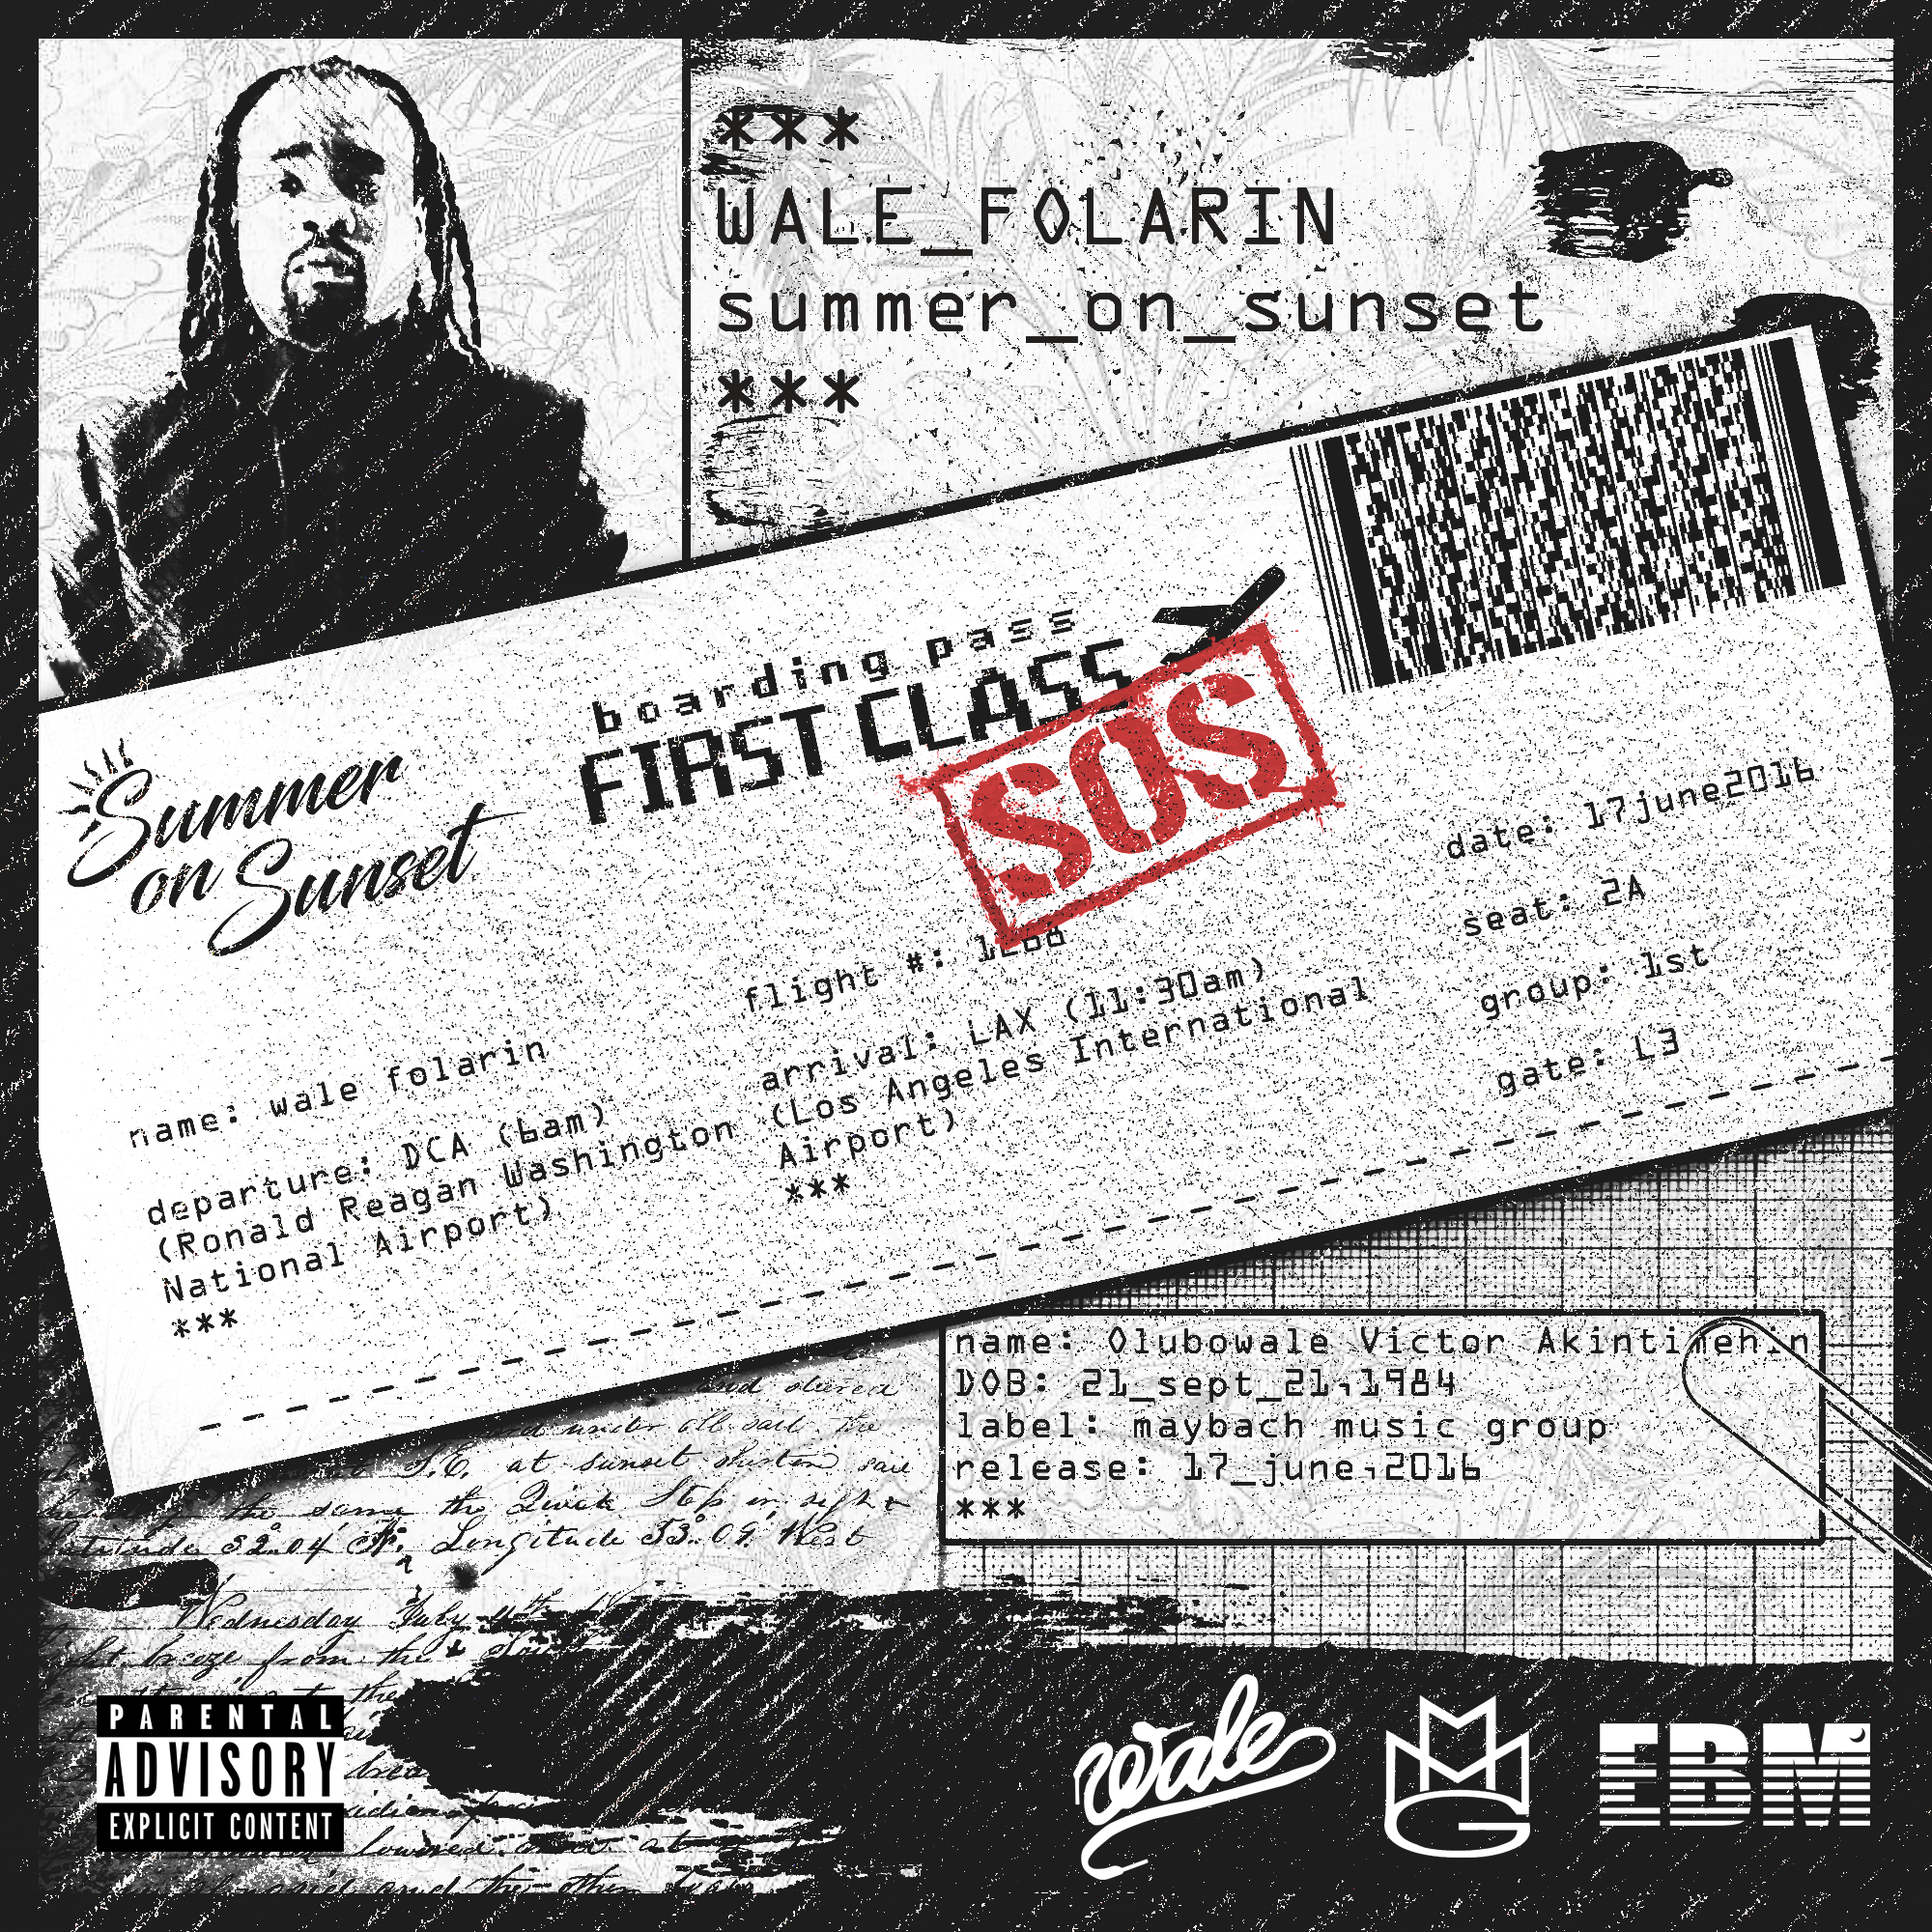 """UNUSED mixtape front cover artwork designed for Wale's 2016 project """"Summer on Sunset"""". Artwork features a boarding pass from Wale's hometown (DC) to LAX."""